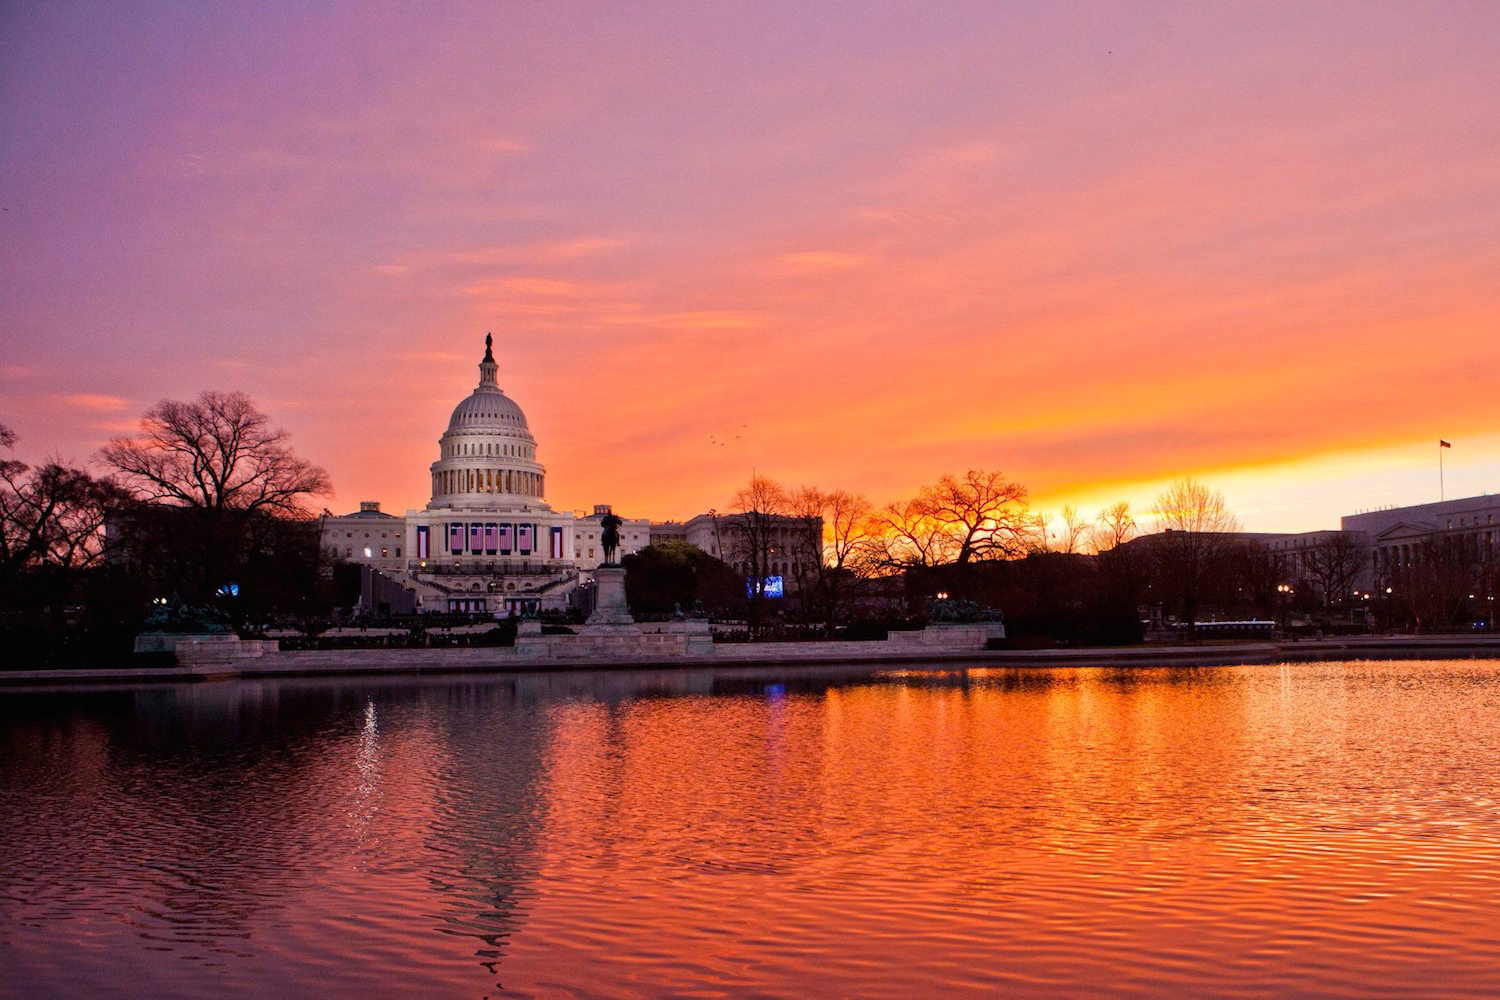 Sunrise in Washington, D.C.